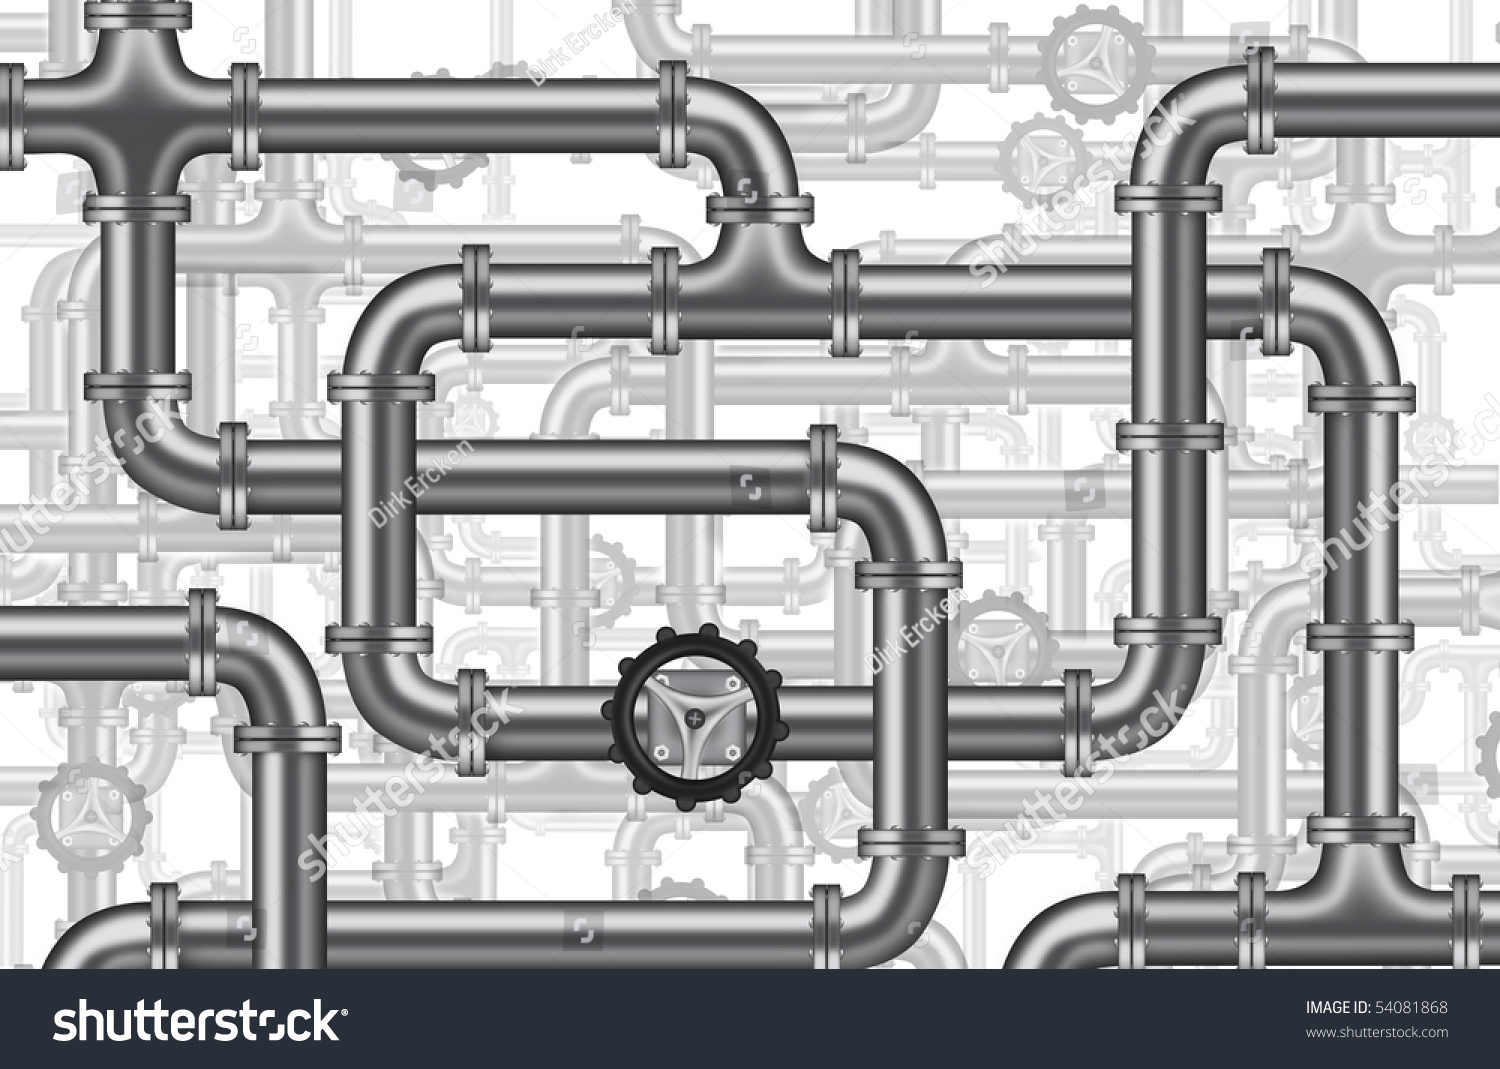 Plumbing Water Piping Pipelines Tubing Valve Stock Illustration 54081868